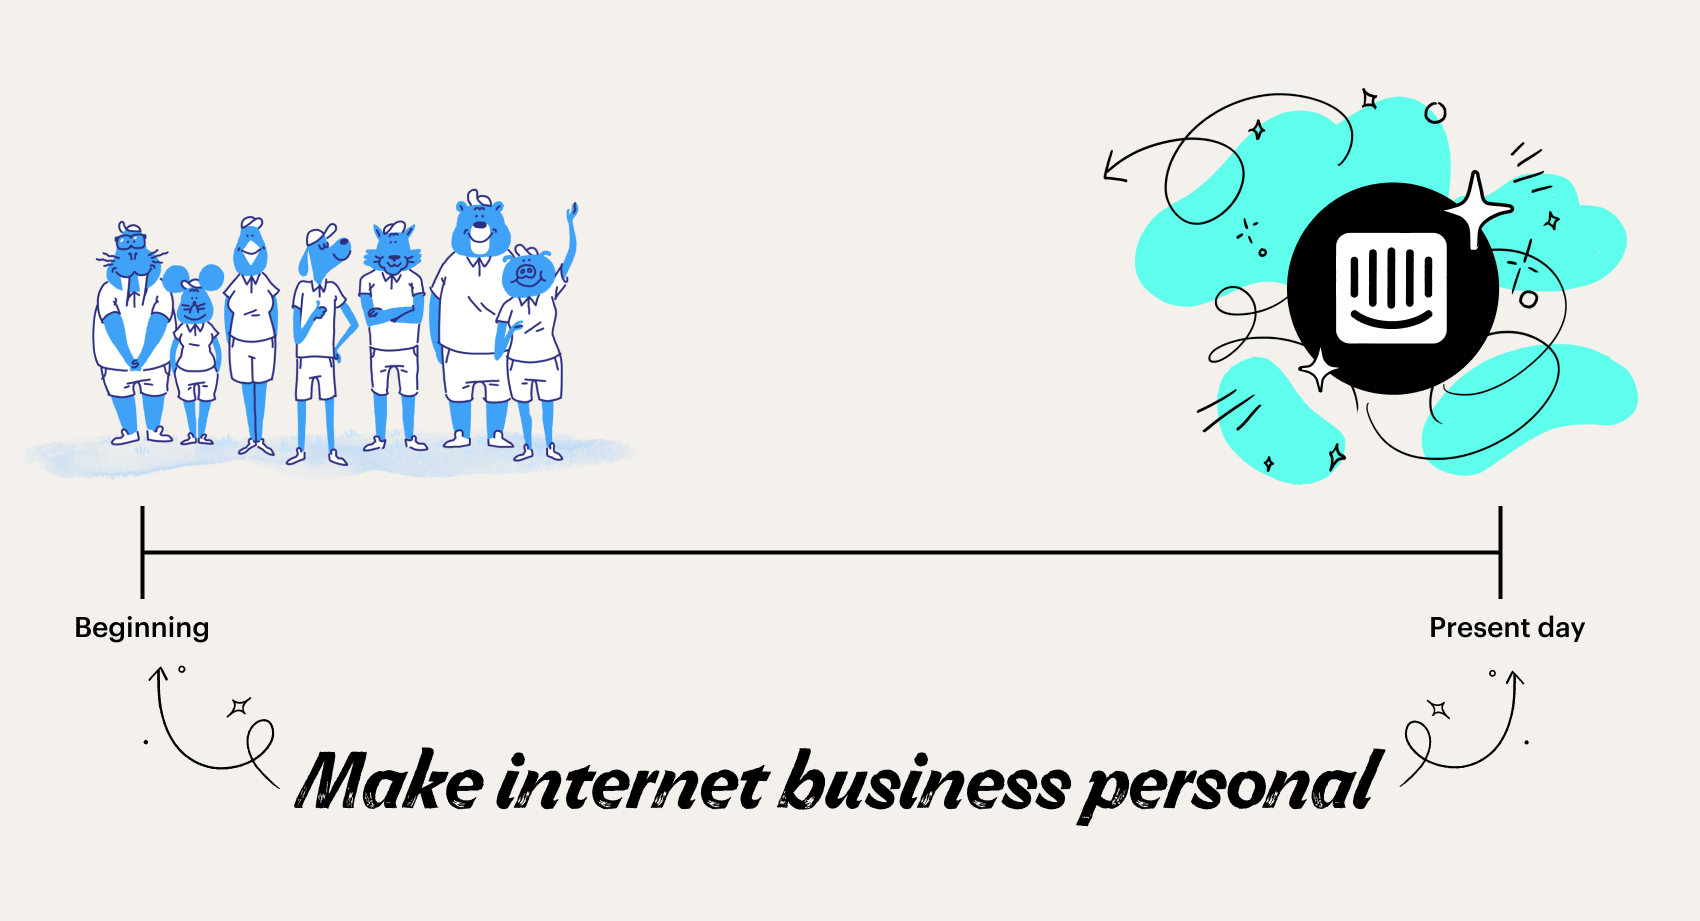 Beginning - present day. Make internet business personal.